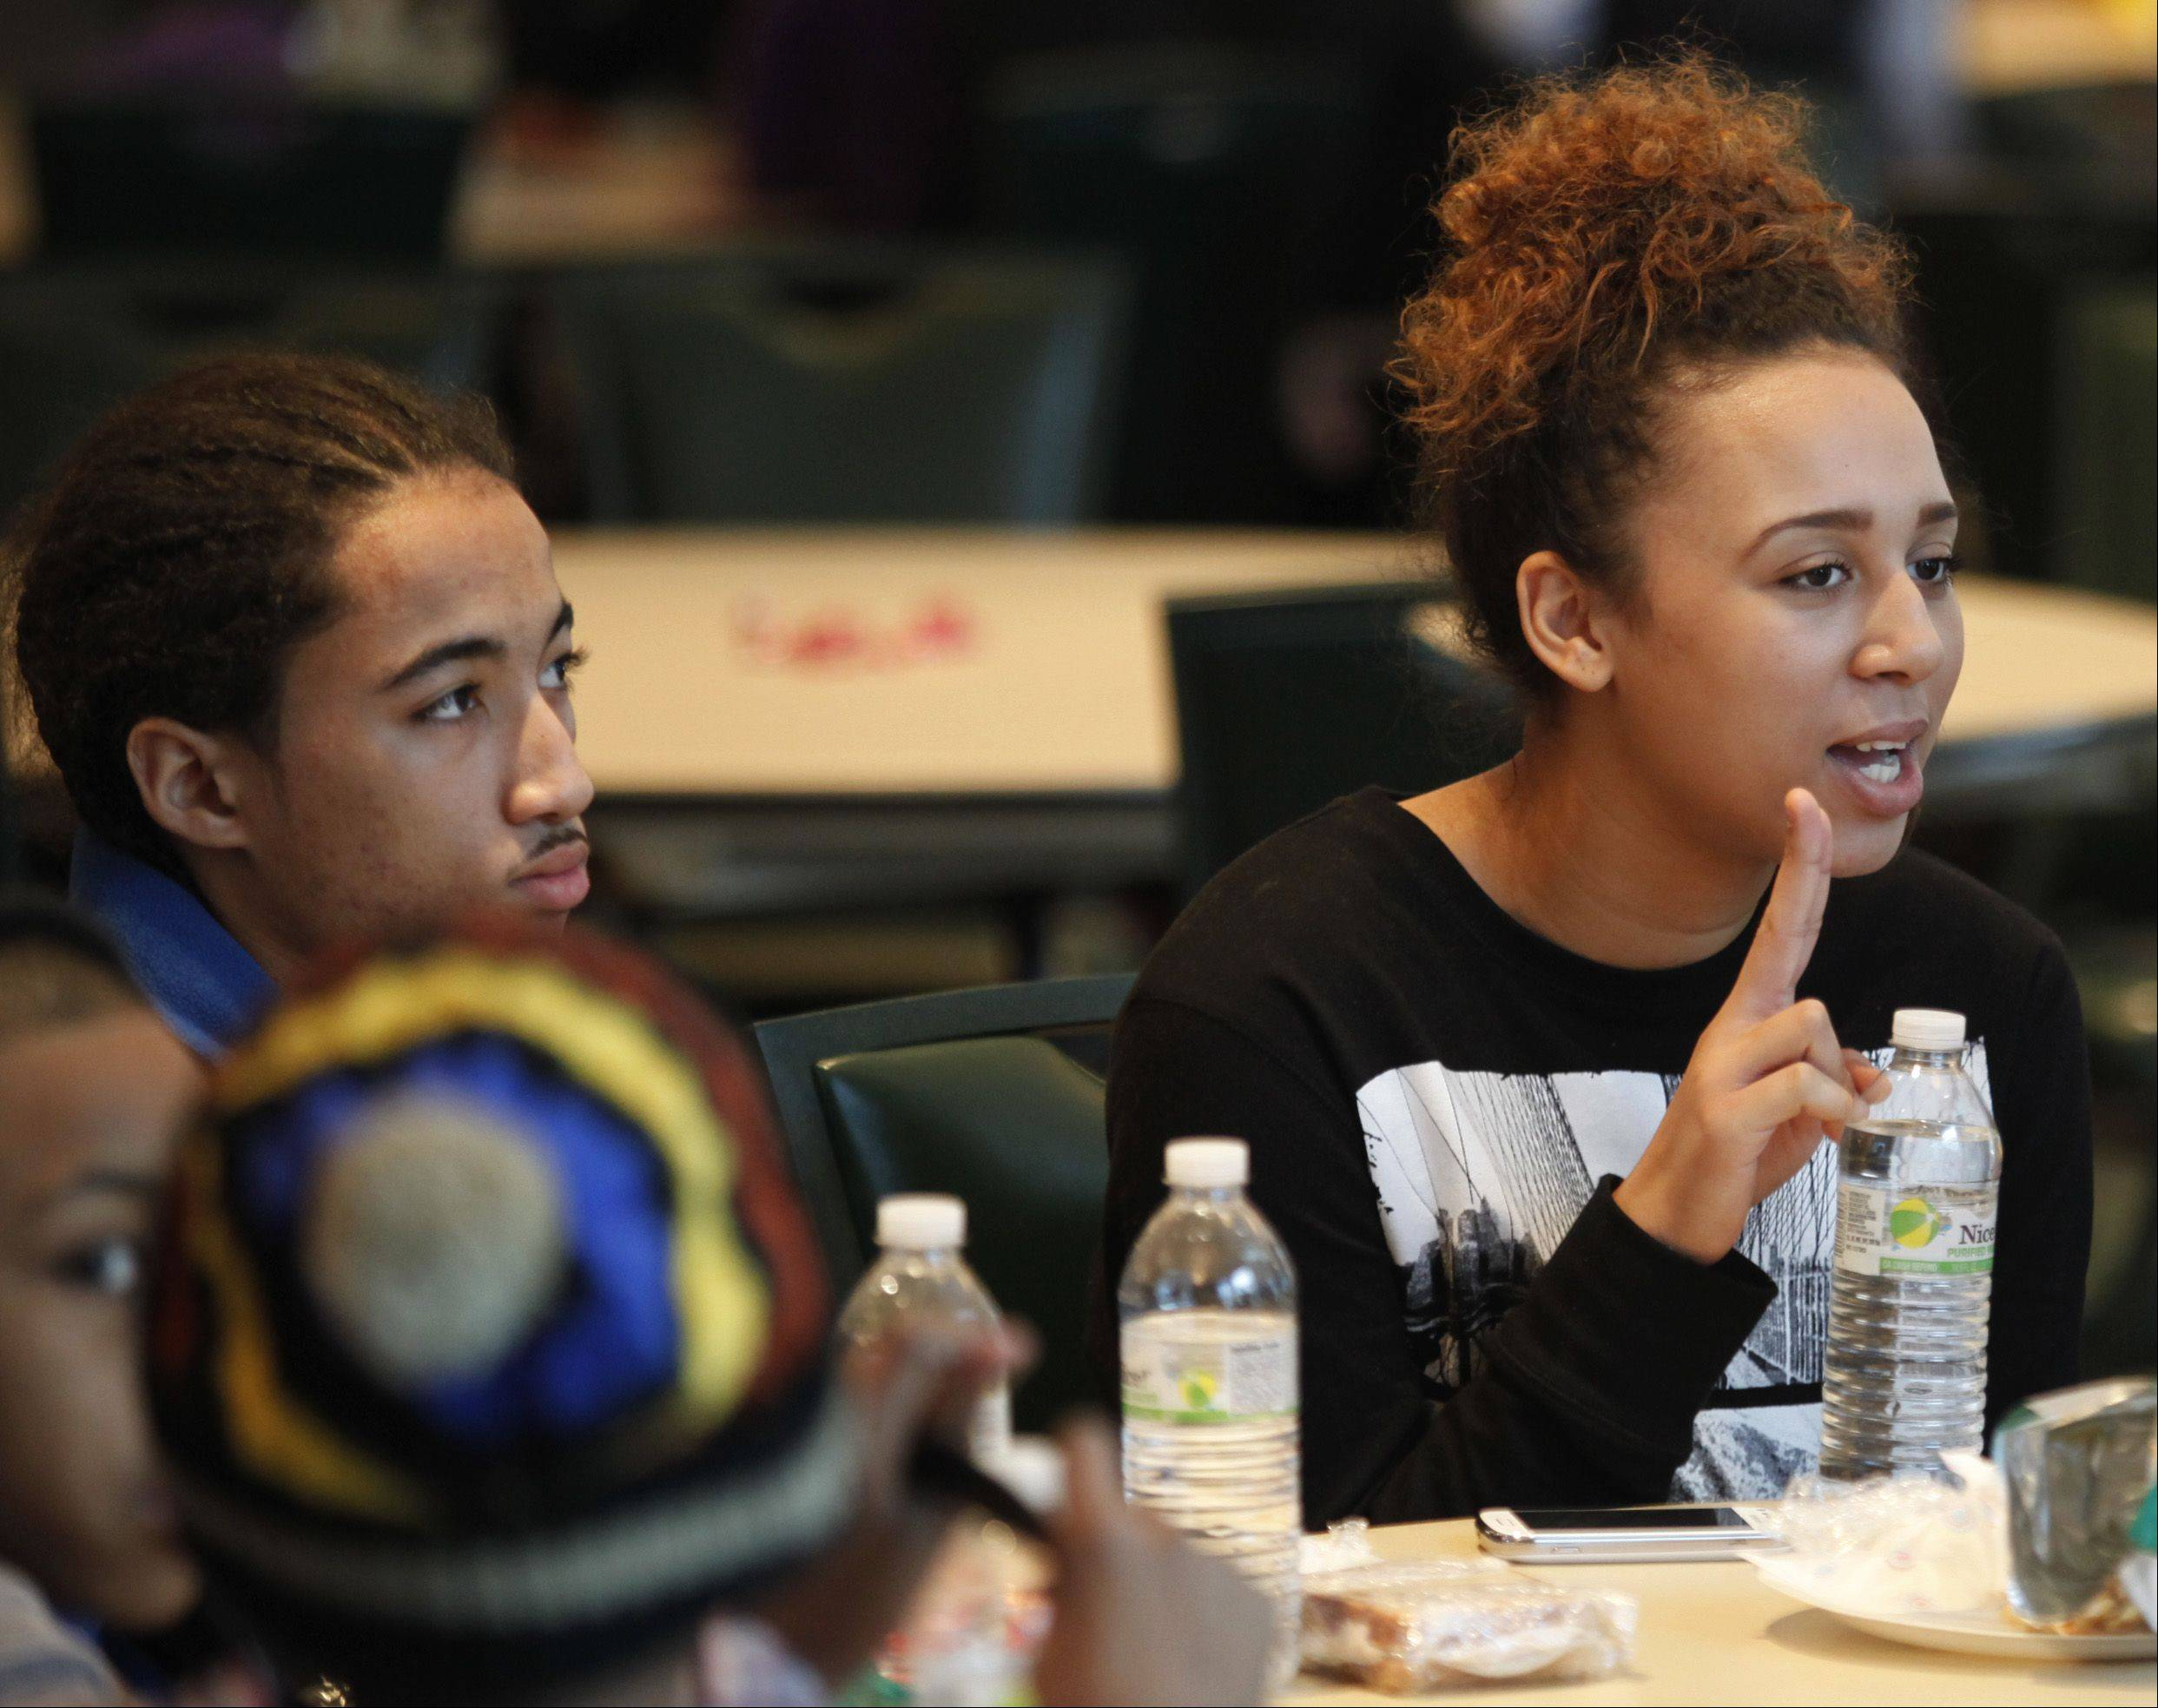 Gina Clements of Elgin, right, answers a question during a table discussion about Martin Luther King Jr. Monday with other members of the Living Gospel Youth Group including her brother Chevelle, at left. Dozens of youths from local schools, churches and other civic groups attended a luncheon in the Heritage Ballroom at The Centre of Elgin, the culmination of their volunteer work during the Day of Service event to honor the legacy of the civil rights leader.